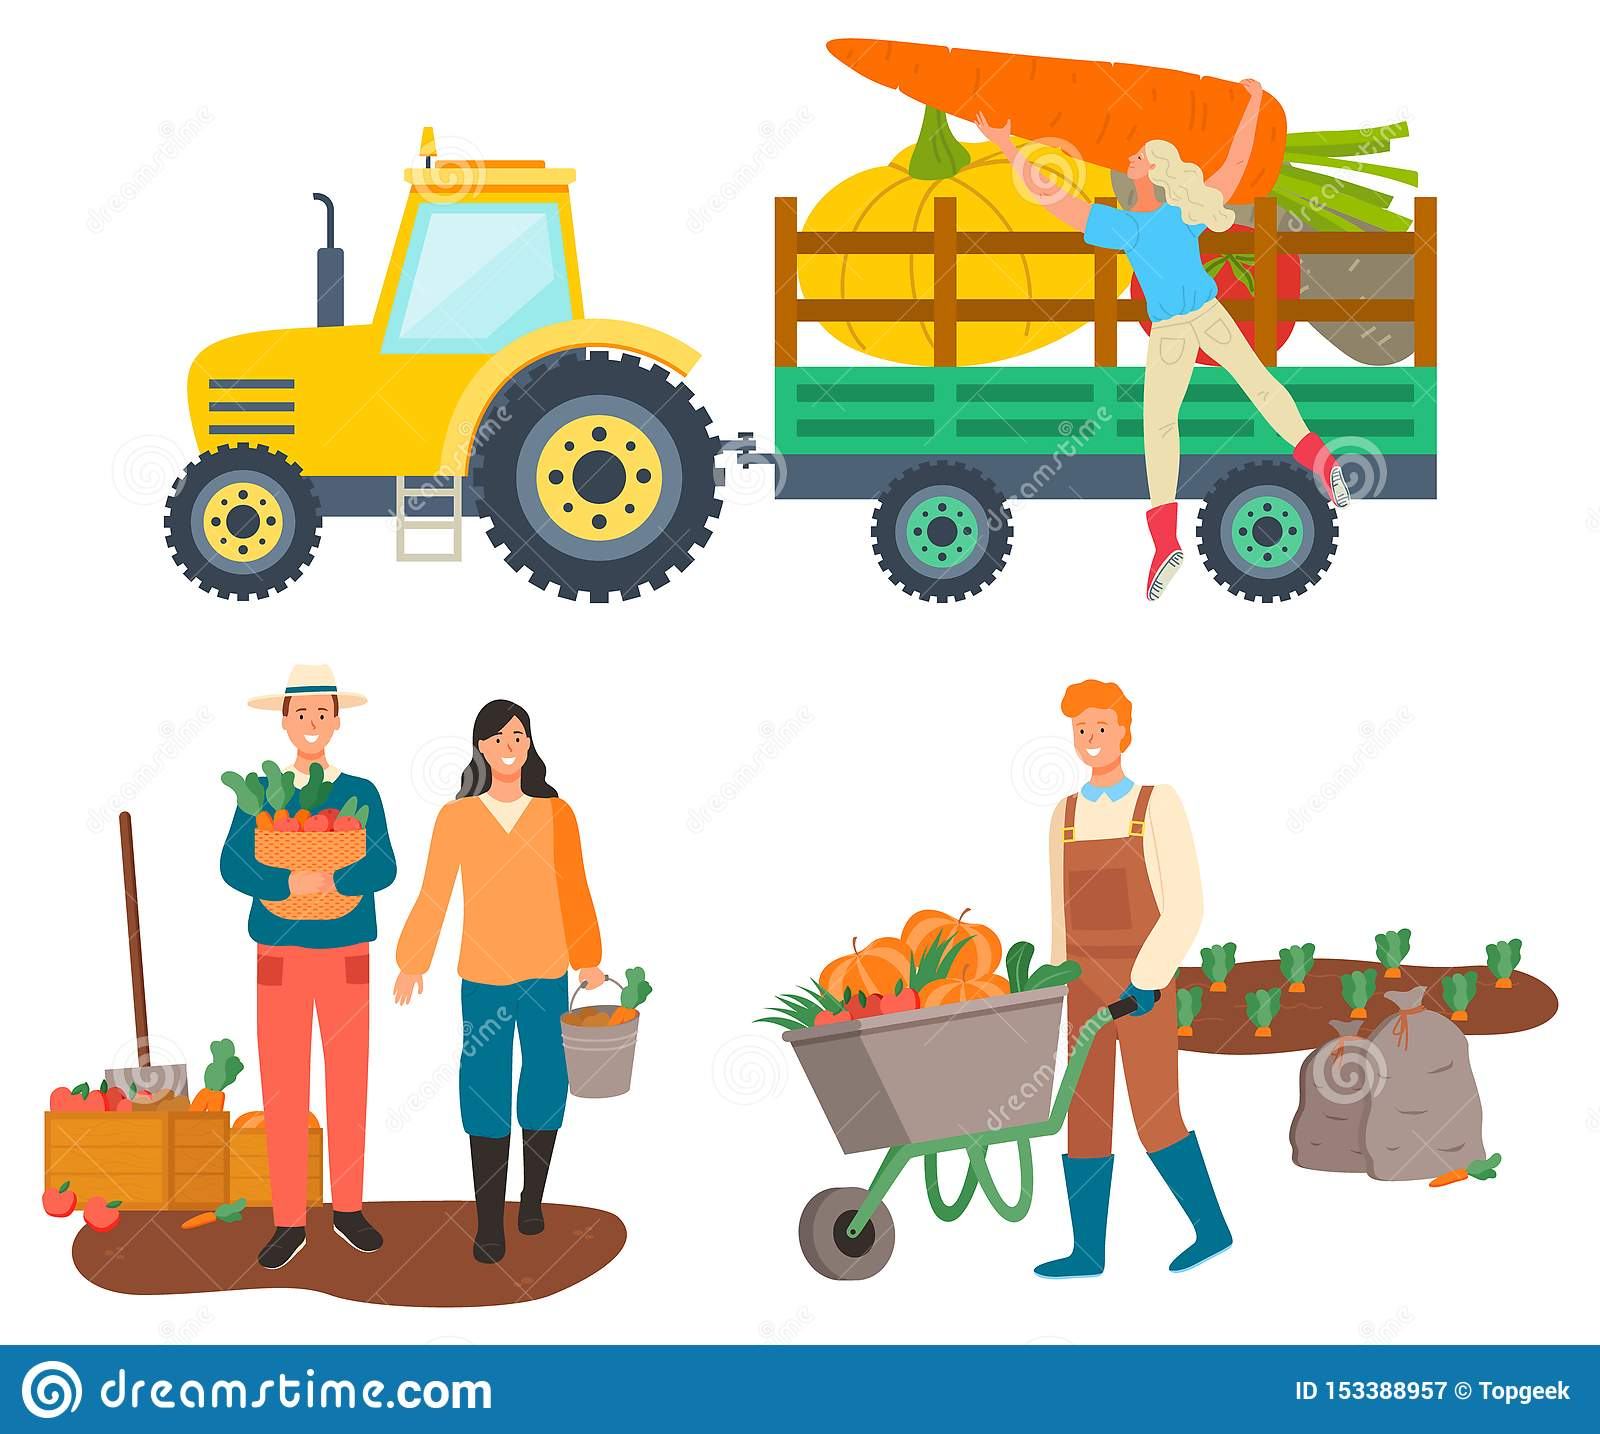 Farming People, Tractor Transportation of Goods